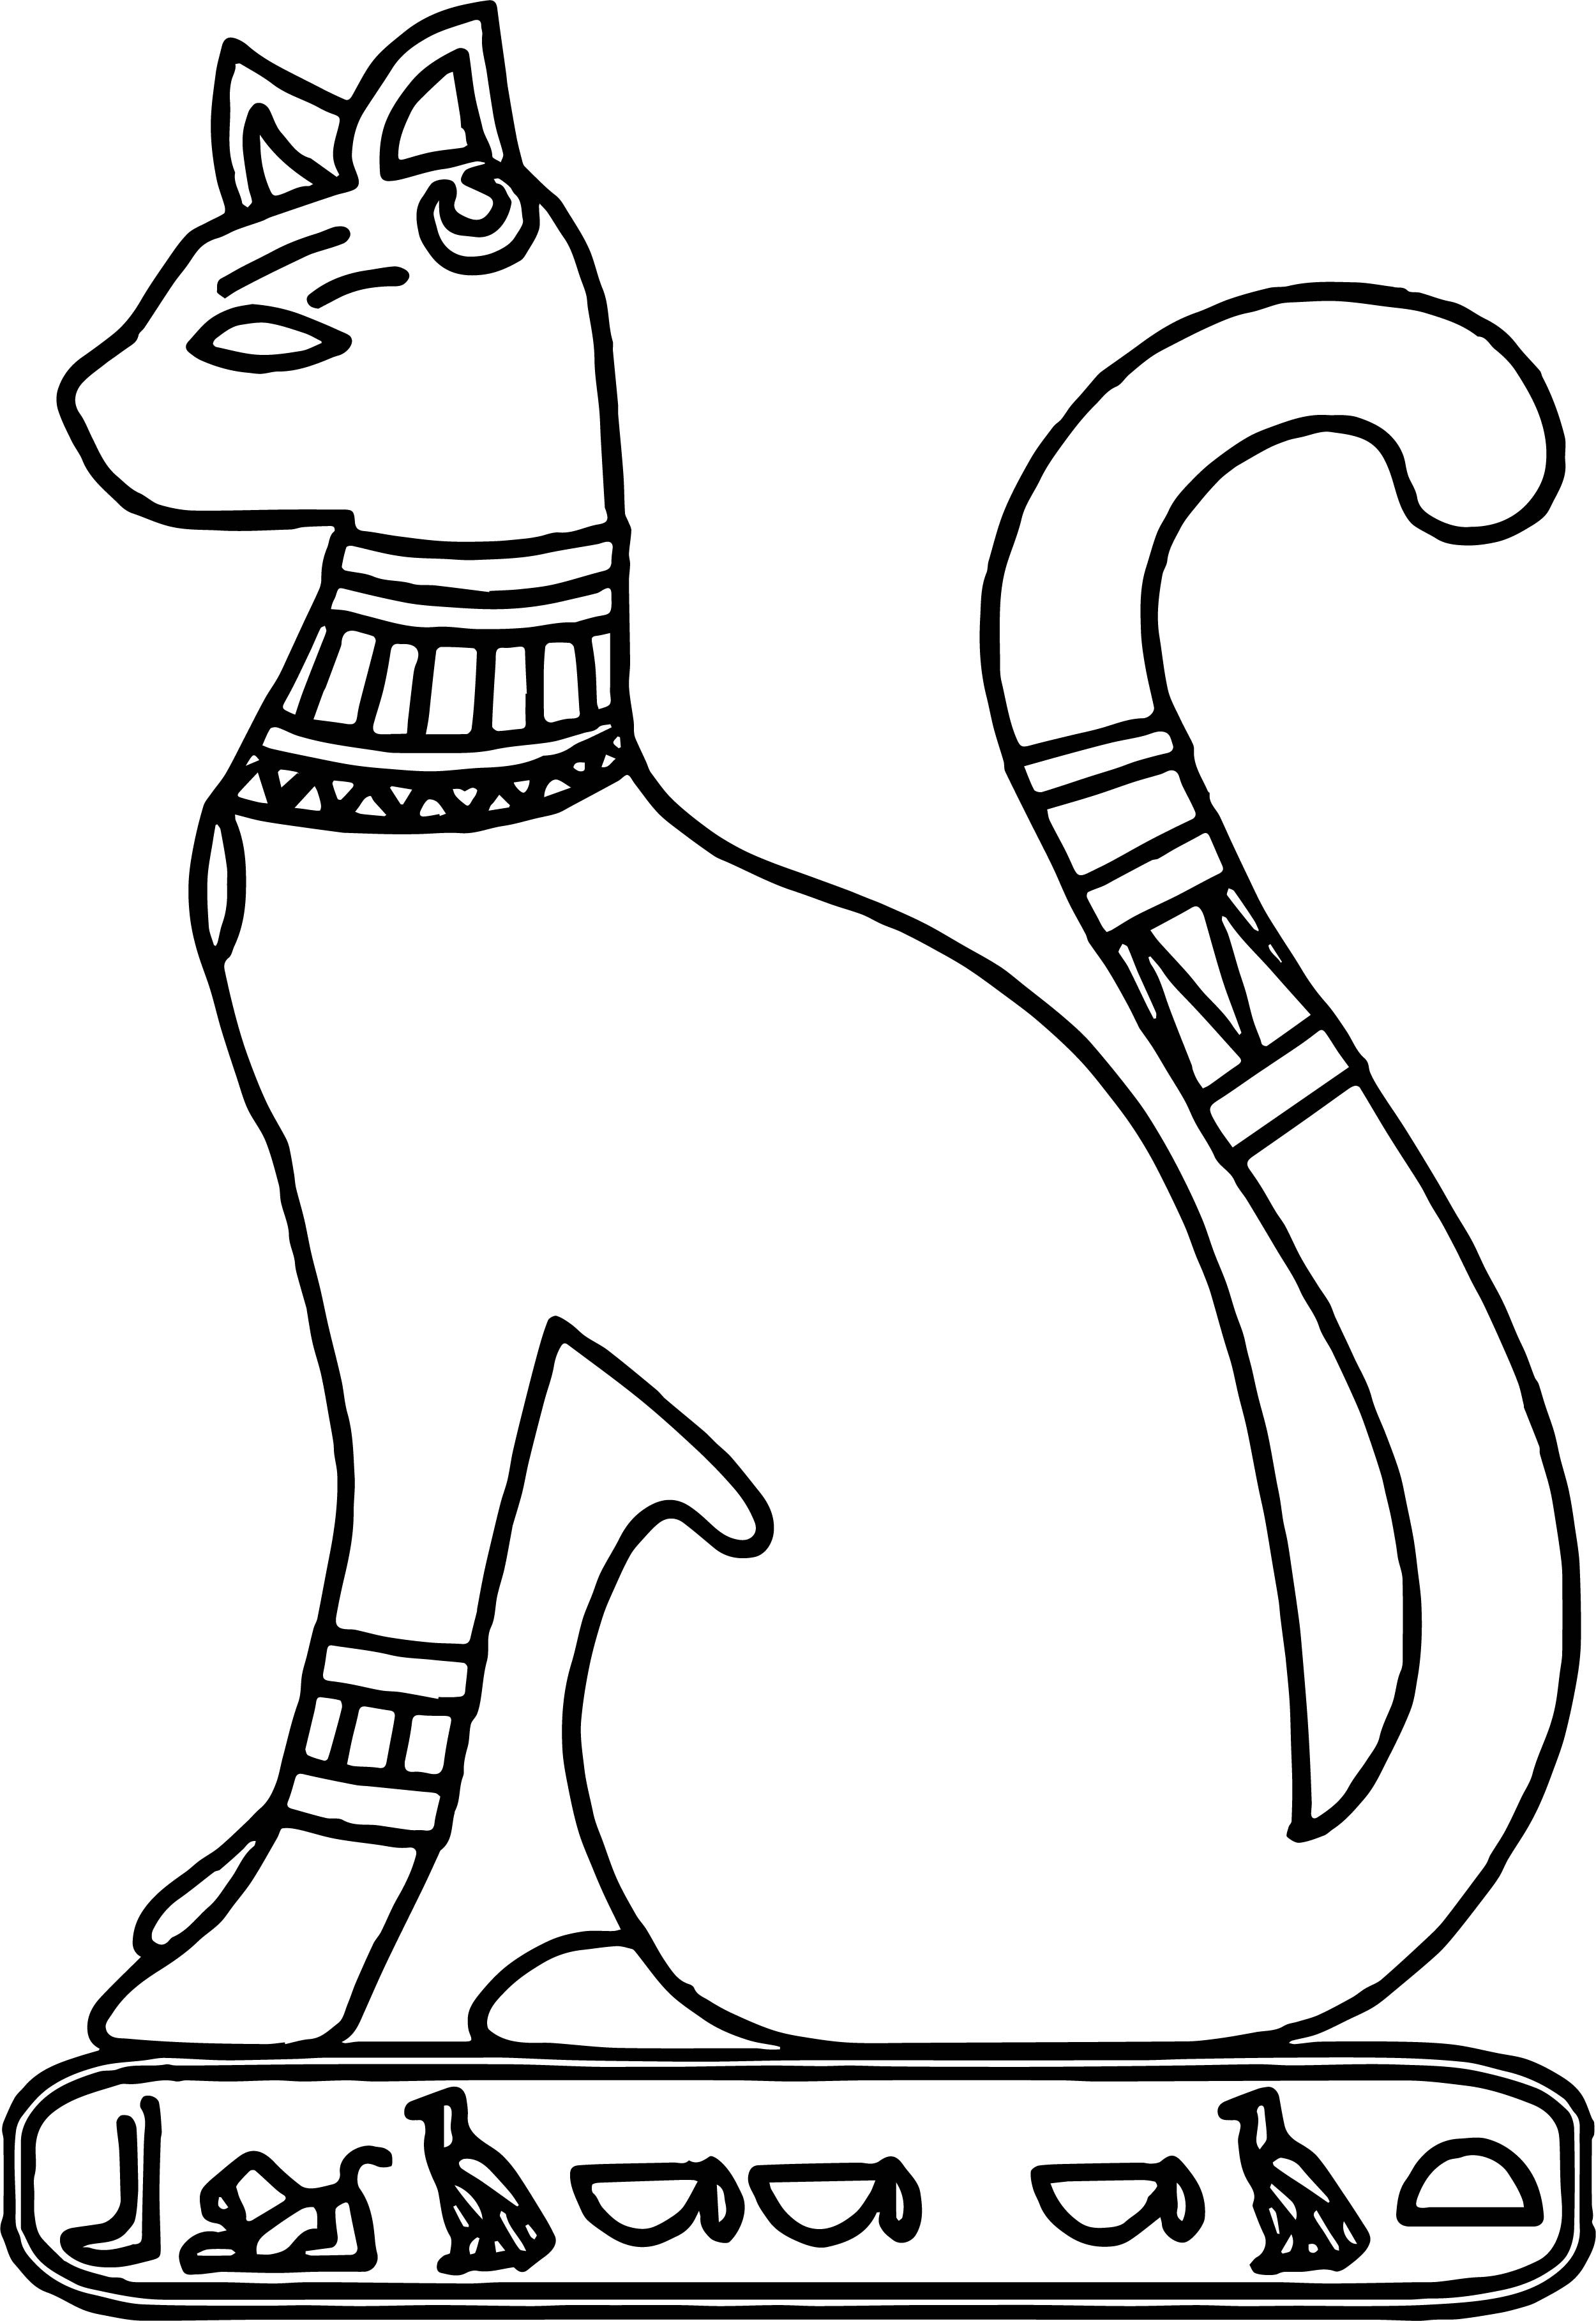 Egyptian clipart egyptian character. Ancient drawing cat typegoodies